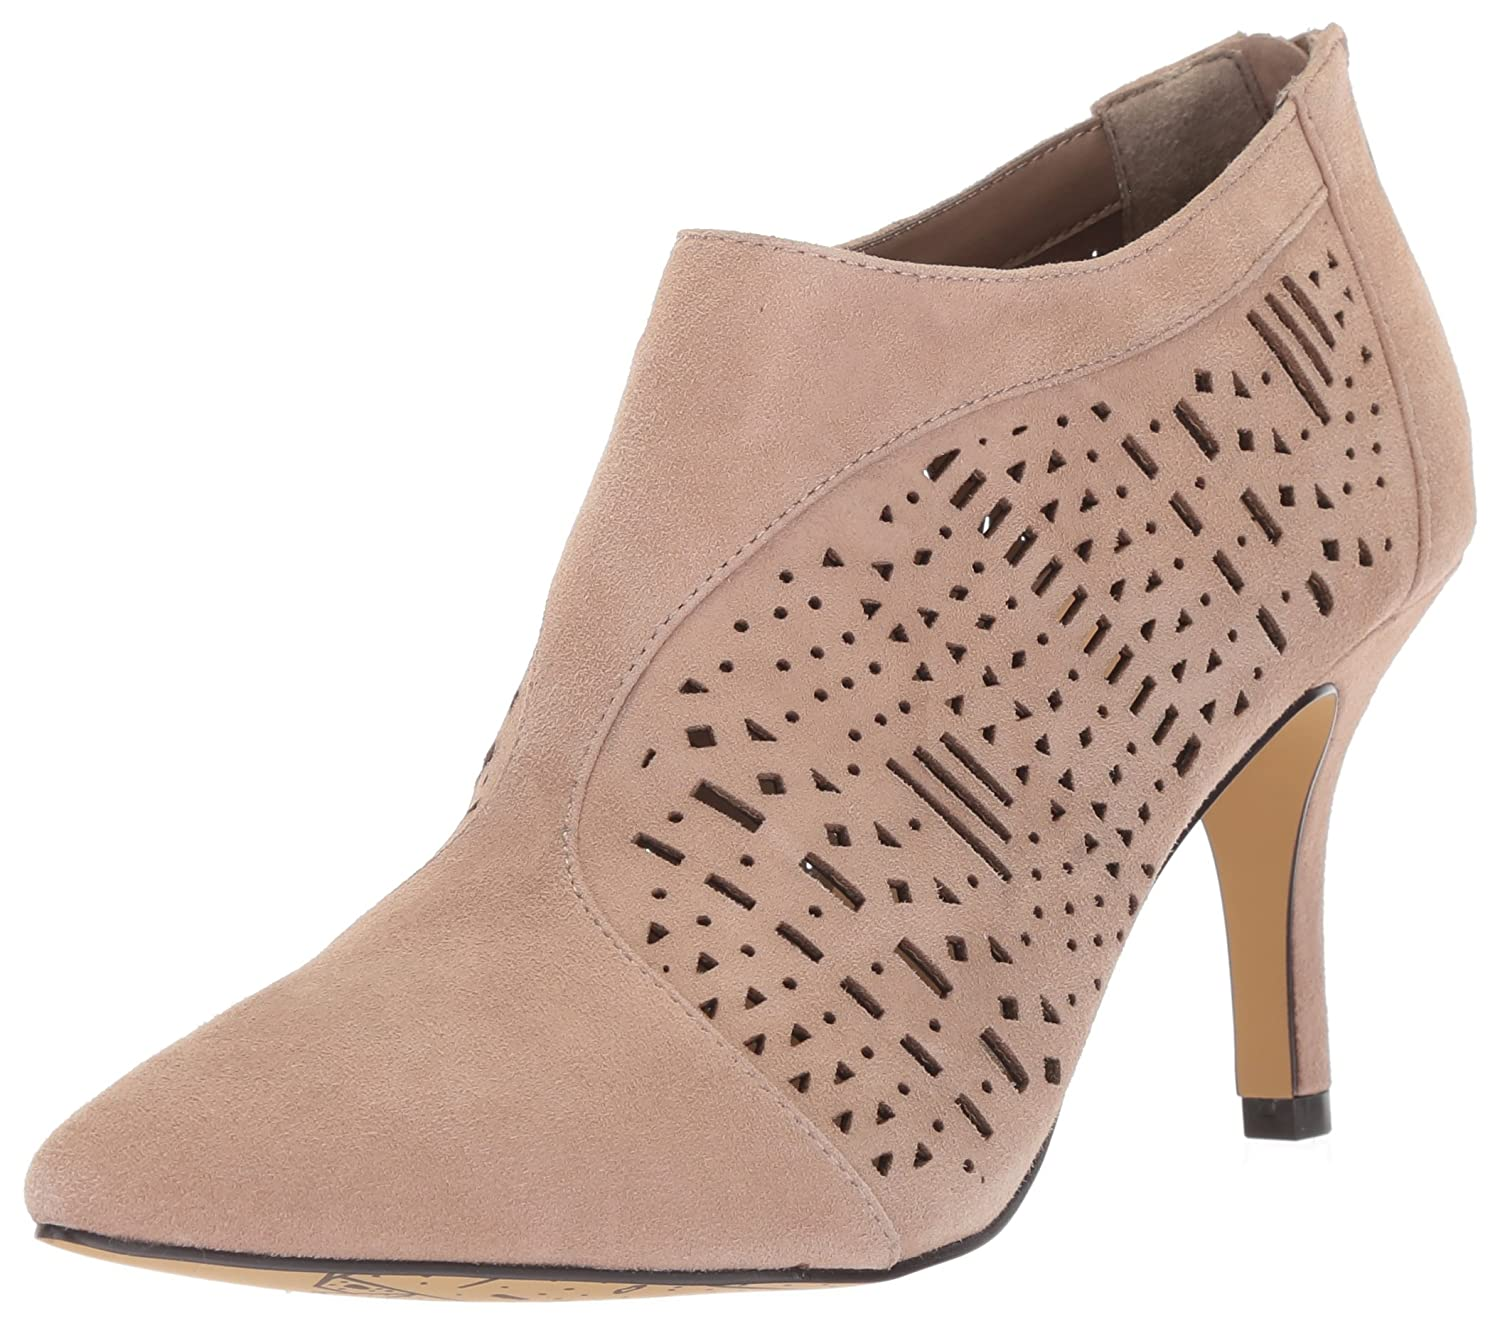 Bella Vita Women's Darlene Ankle Boot B0781VBZ88 11 2W US|Almond Kid Suede